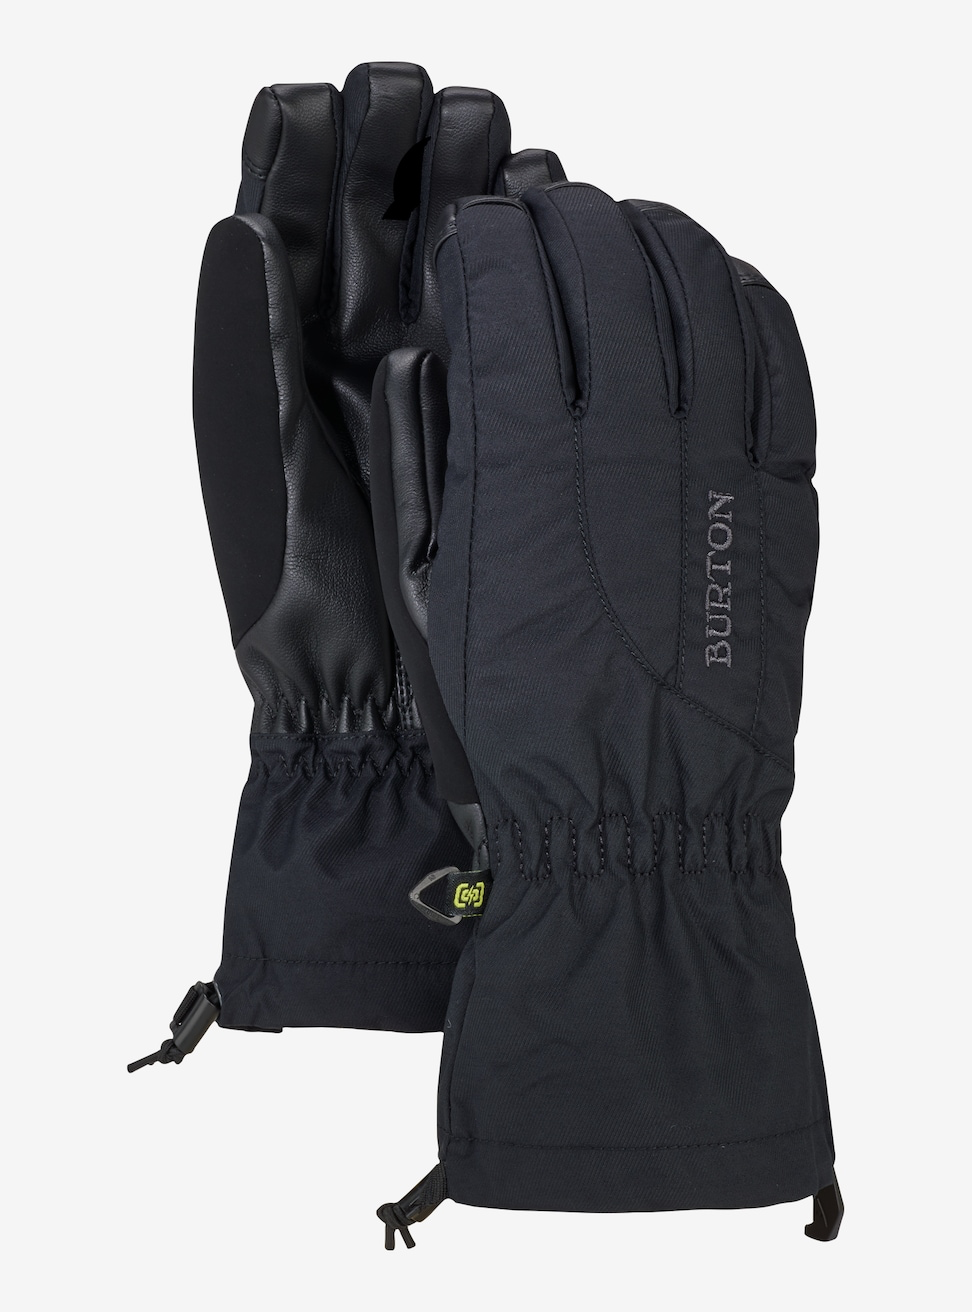 2019 Women's Burton Profile Glove